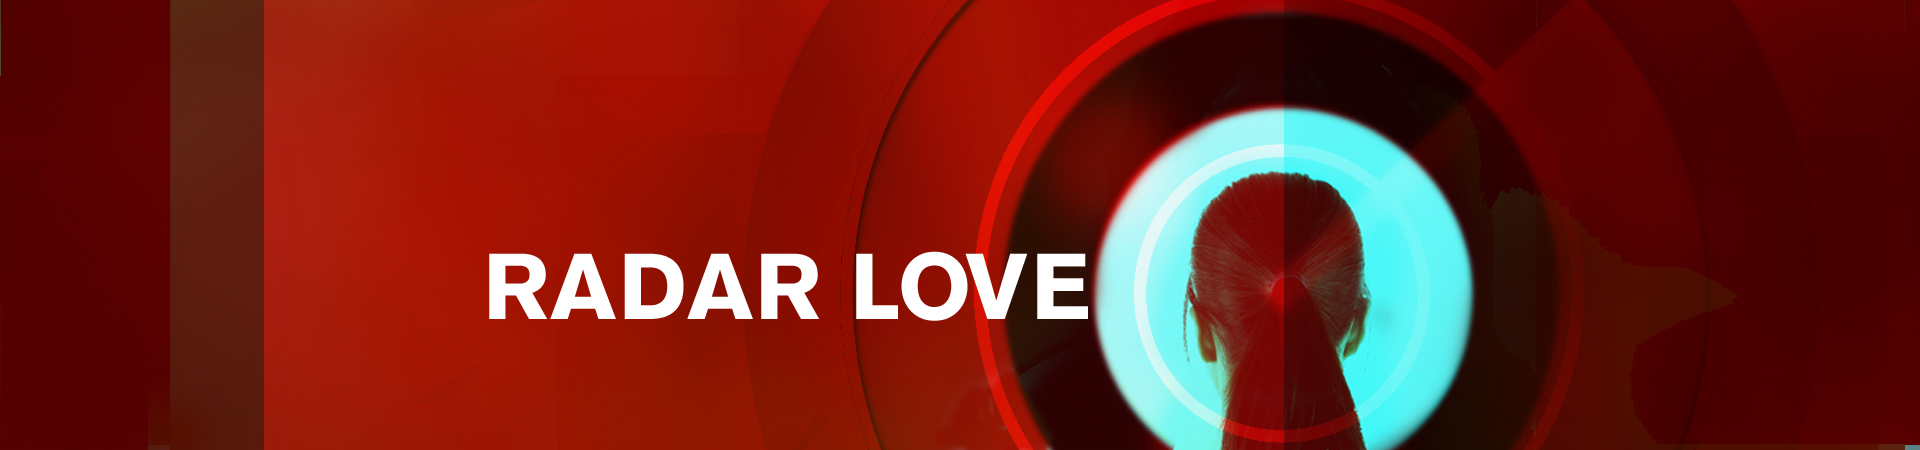 Radar Love master graphic red